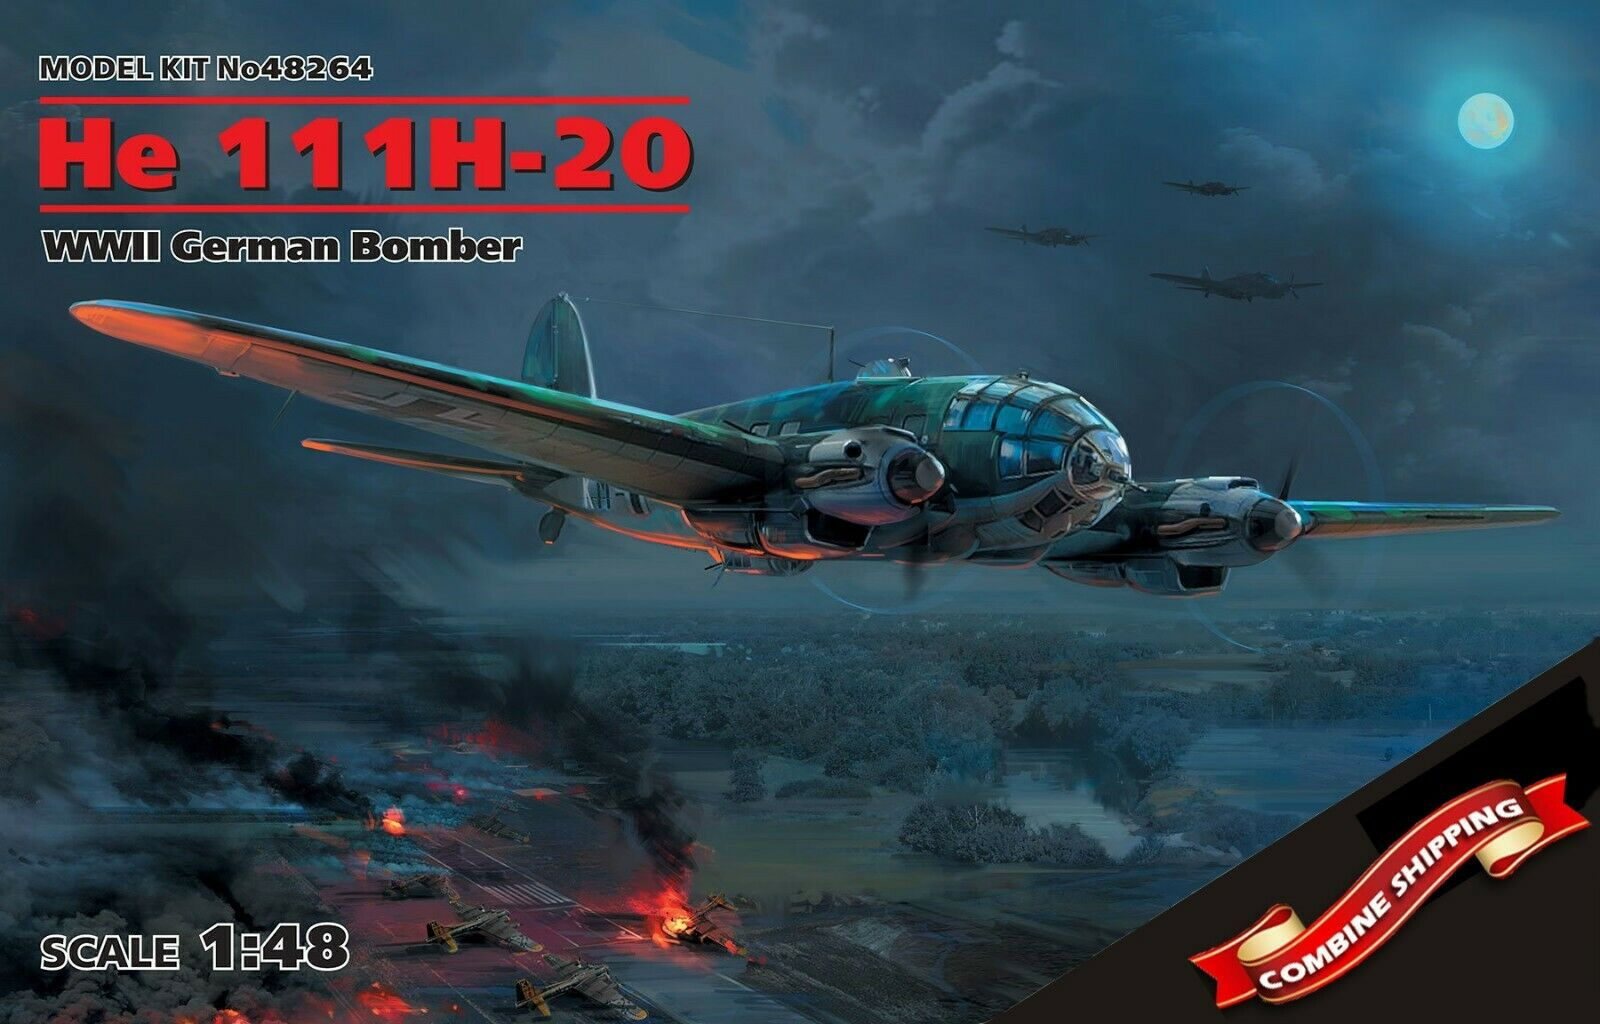 ICM 48264 Heinkel He 111H-20, WWII German Bomber, scale plastic model kit 1 48